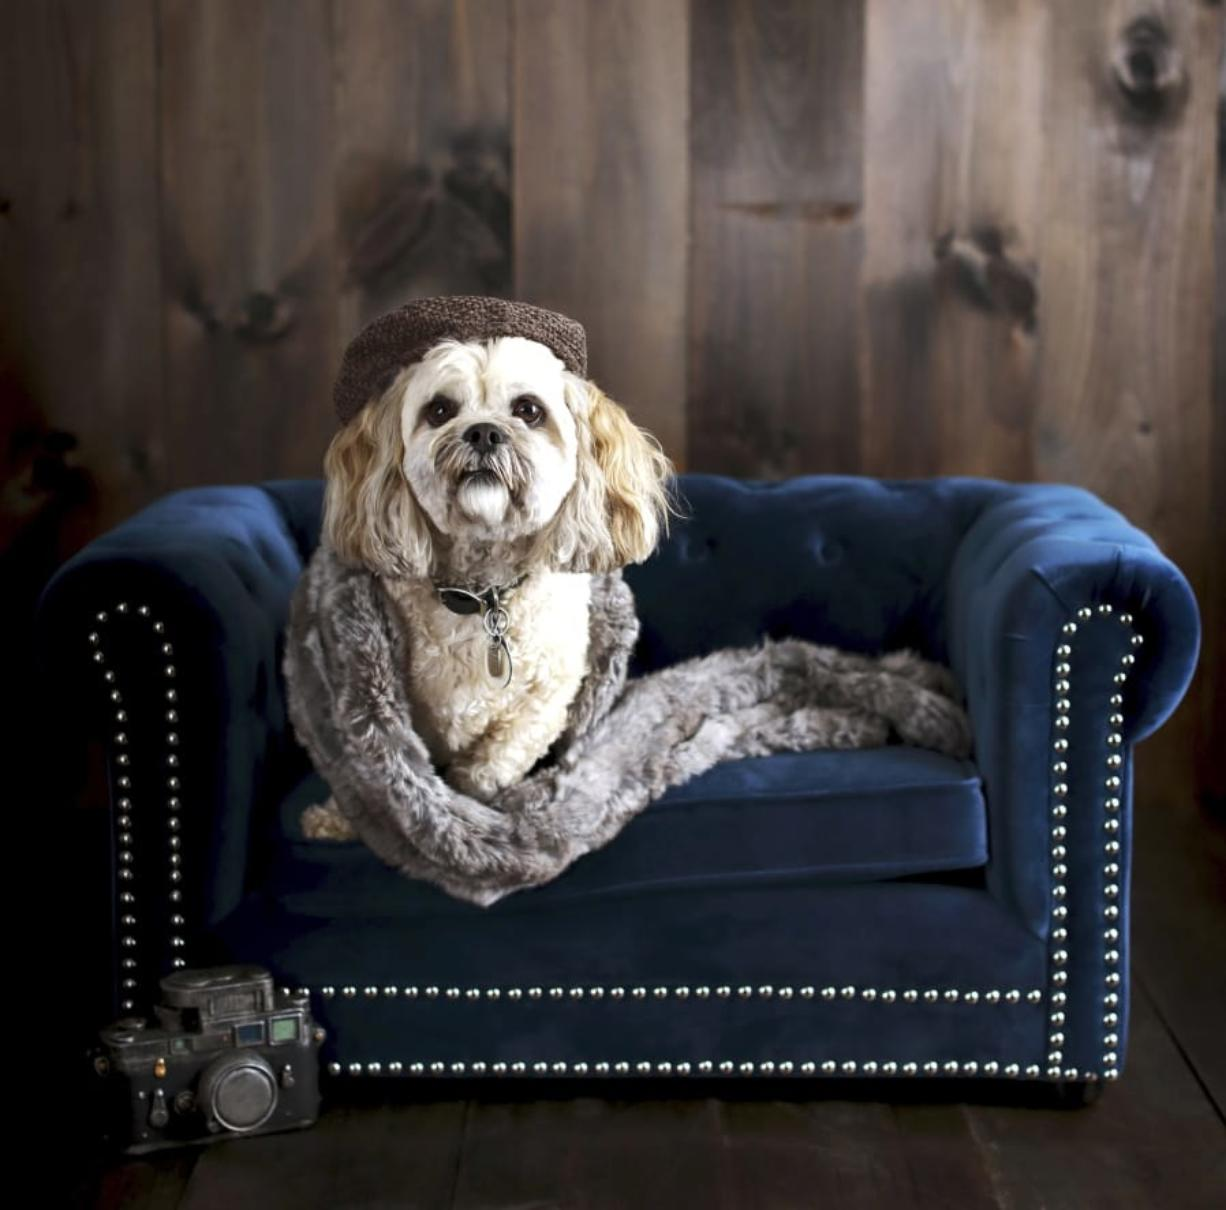 Pottery Barn's Chesterfield Pet Bed. Pottery Barn, Crate and Barrel, Ikea, Casper mattresses and other popular furniture purveyors have lines for pets, often in styles that complement their human-size living room furniture. (Pottery Barn)